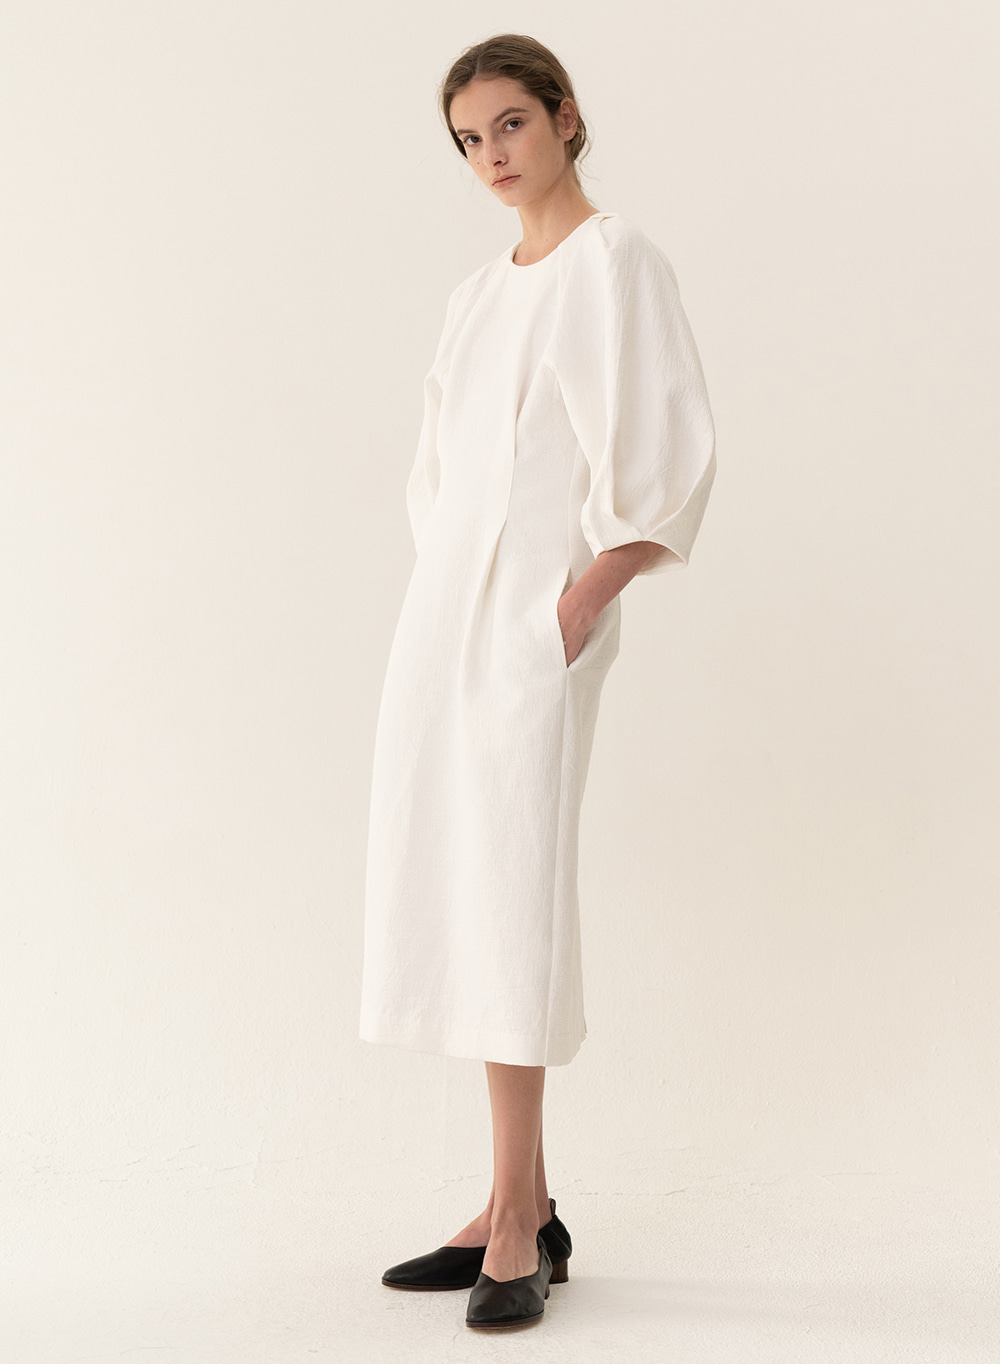 [ESSENTIAL] Cocoon Silhouette Dress White